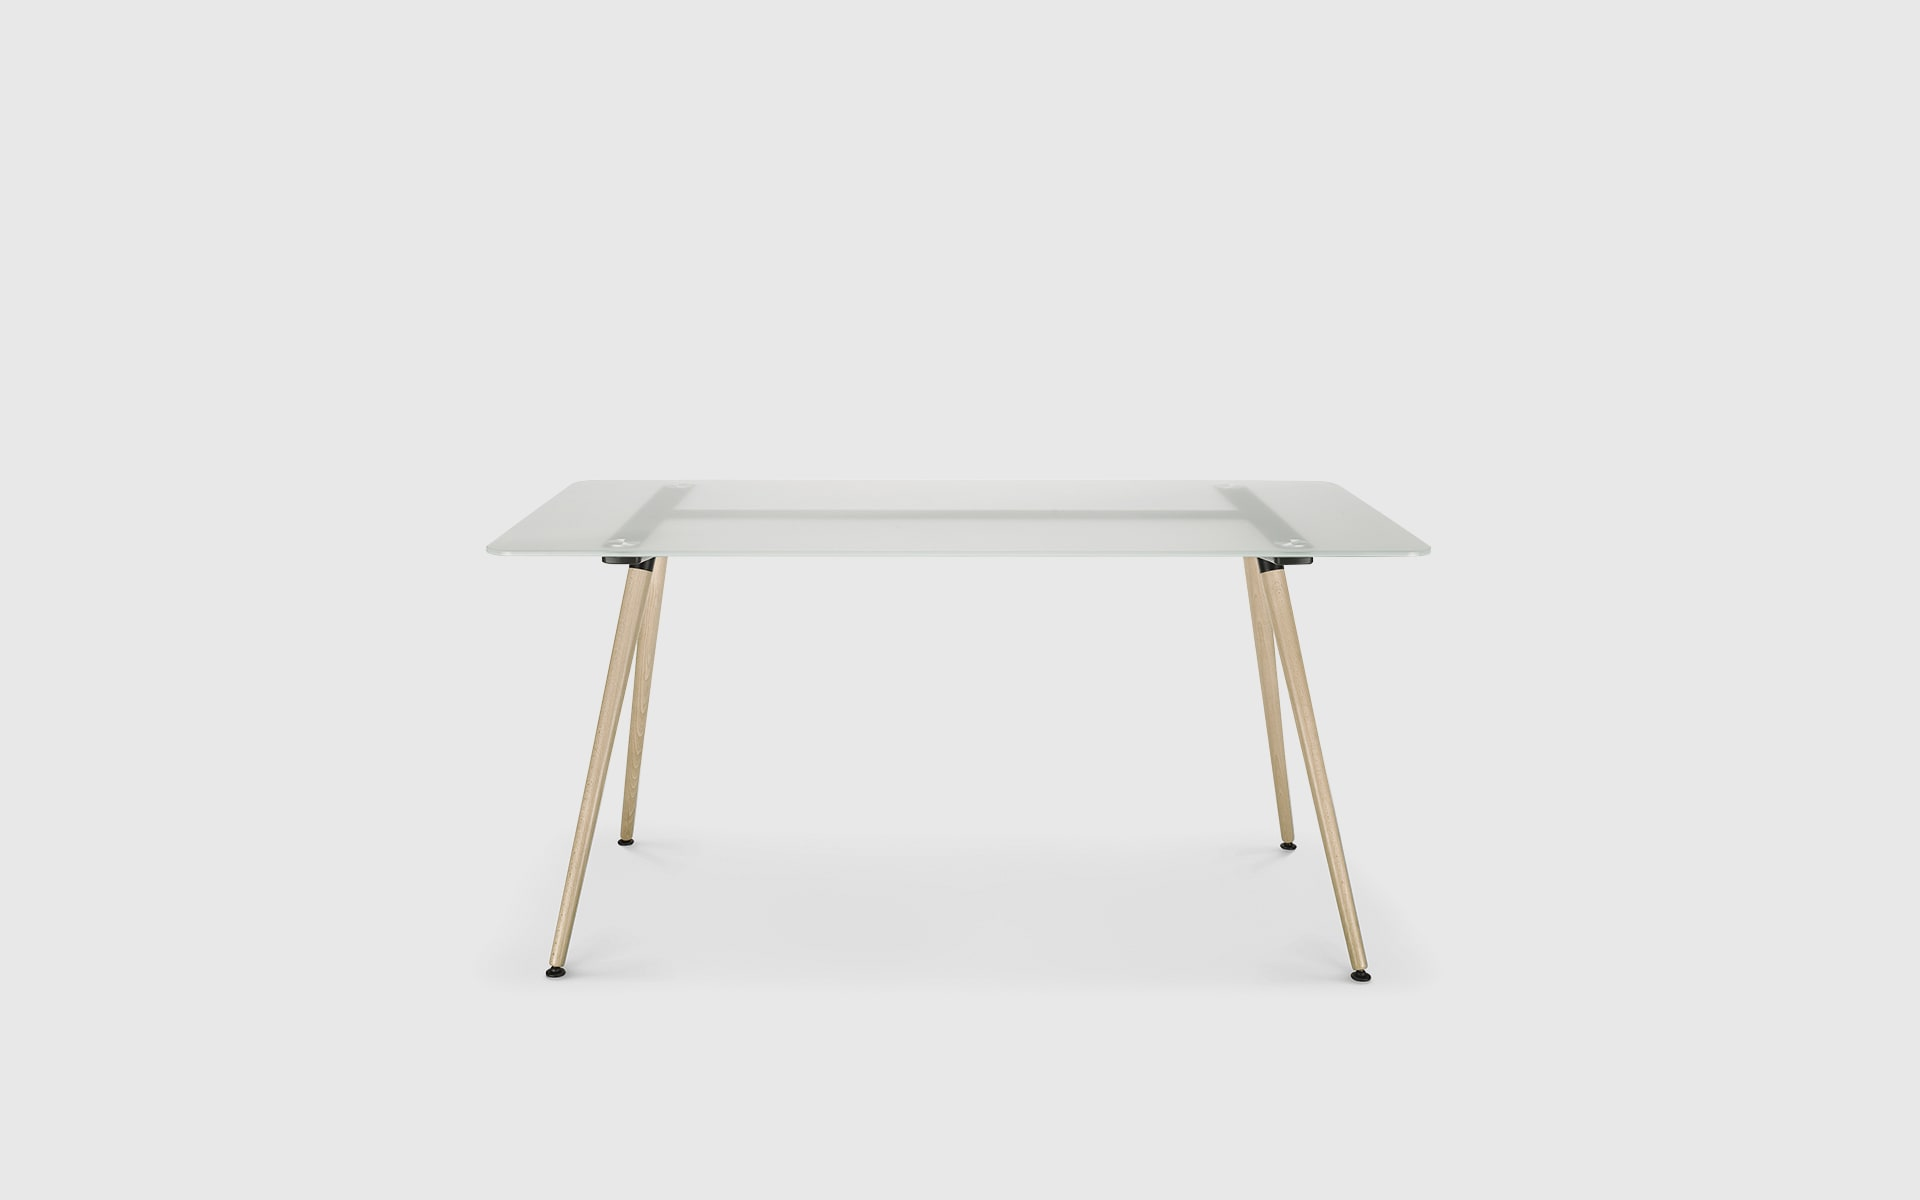 Profim Sam table by ITO Design with milk glass tabletop and natural wood legs